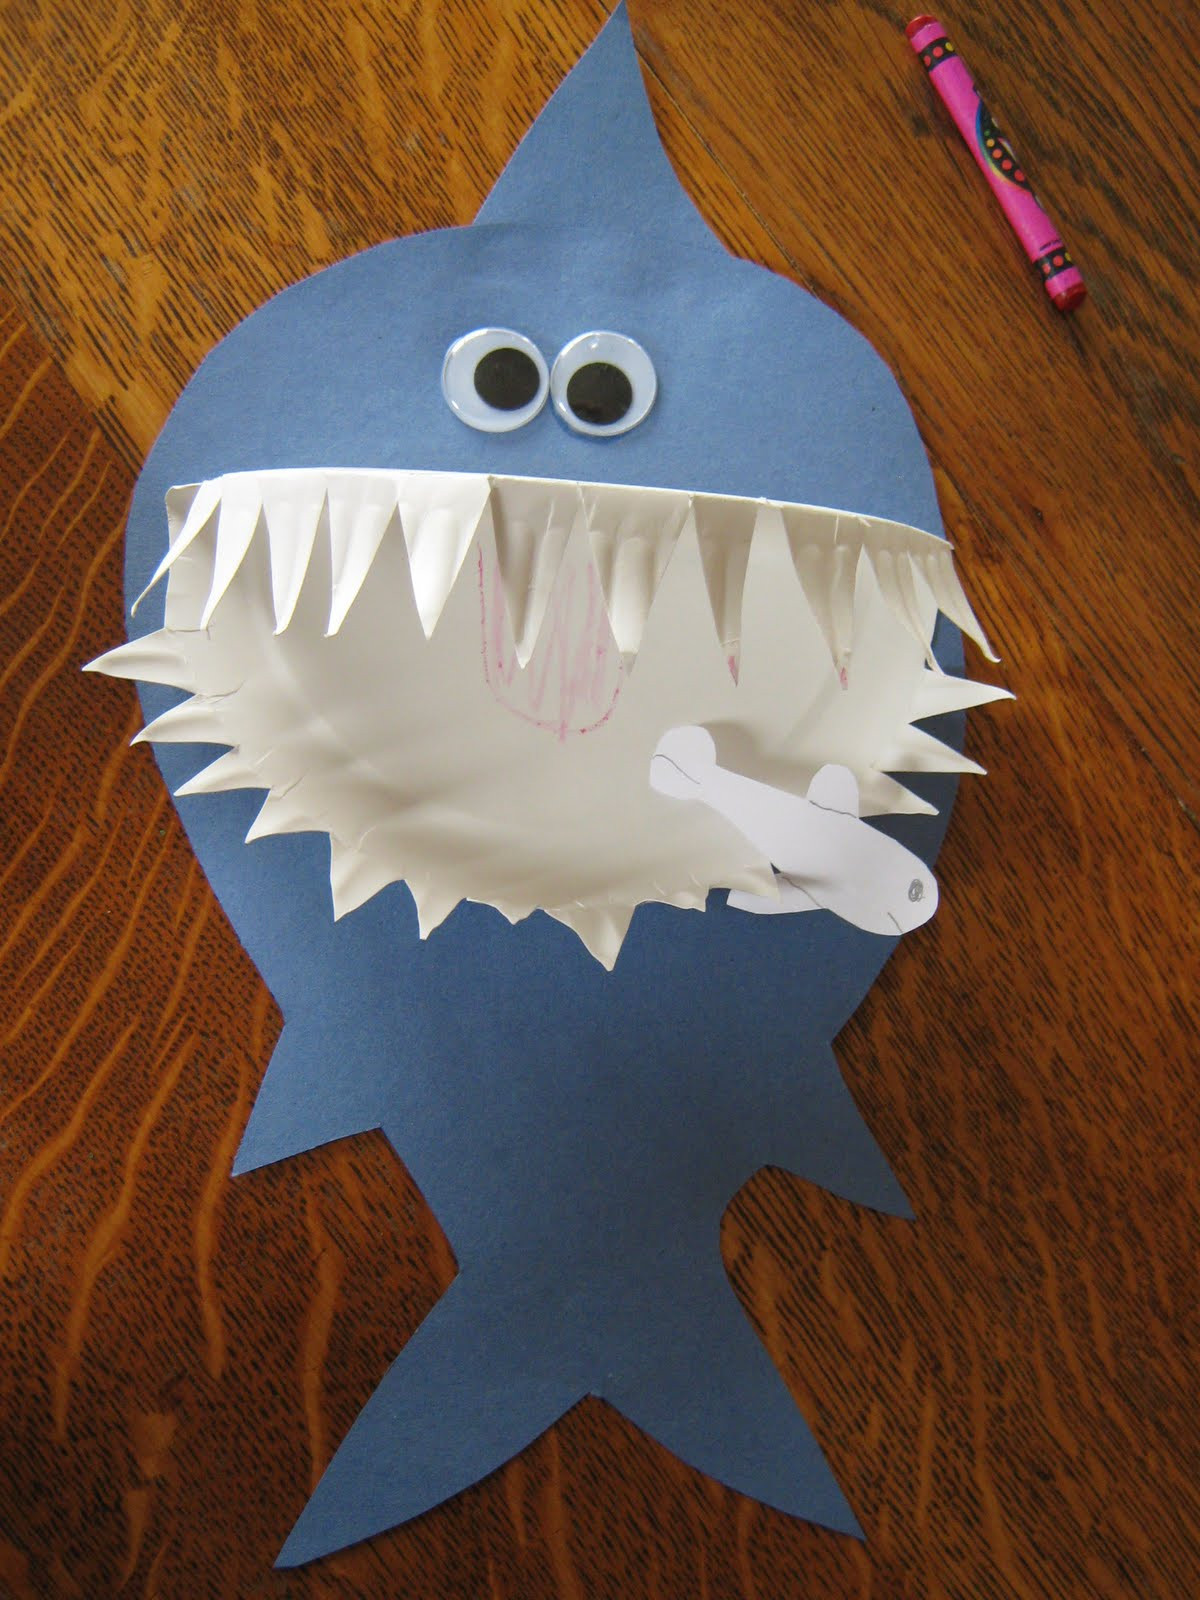 Best ideas about Fun Crafts For Preschoolers . Save or Pin Preschool Crafts for Kids Shark Paper Plate Craft Now.